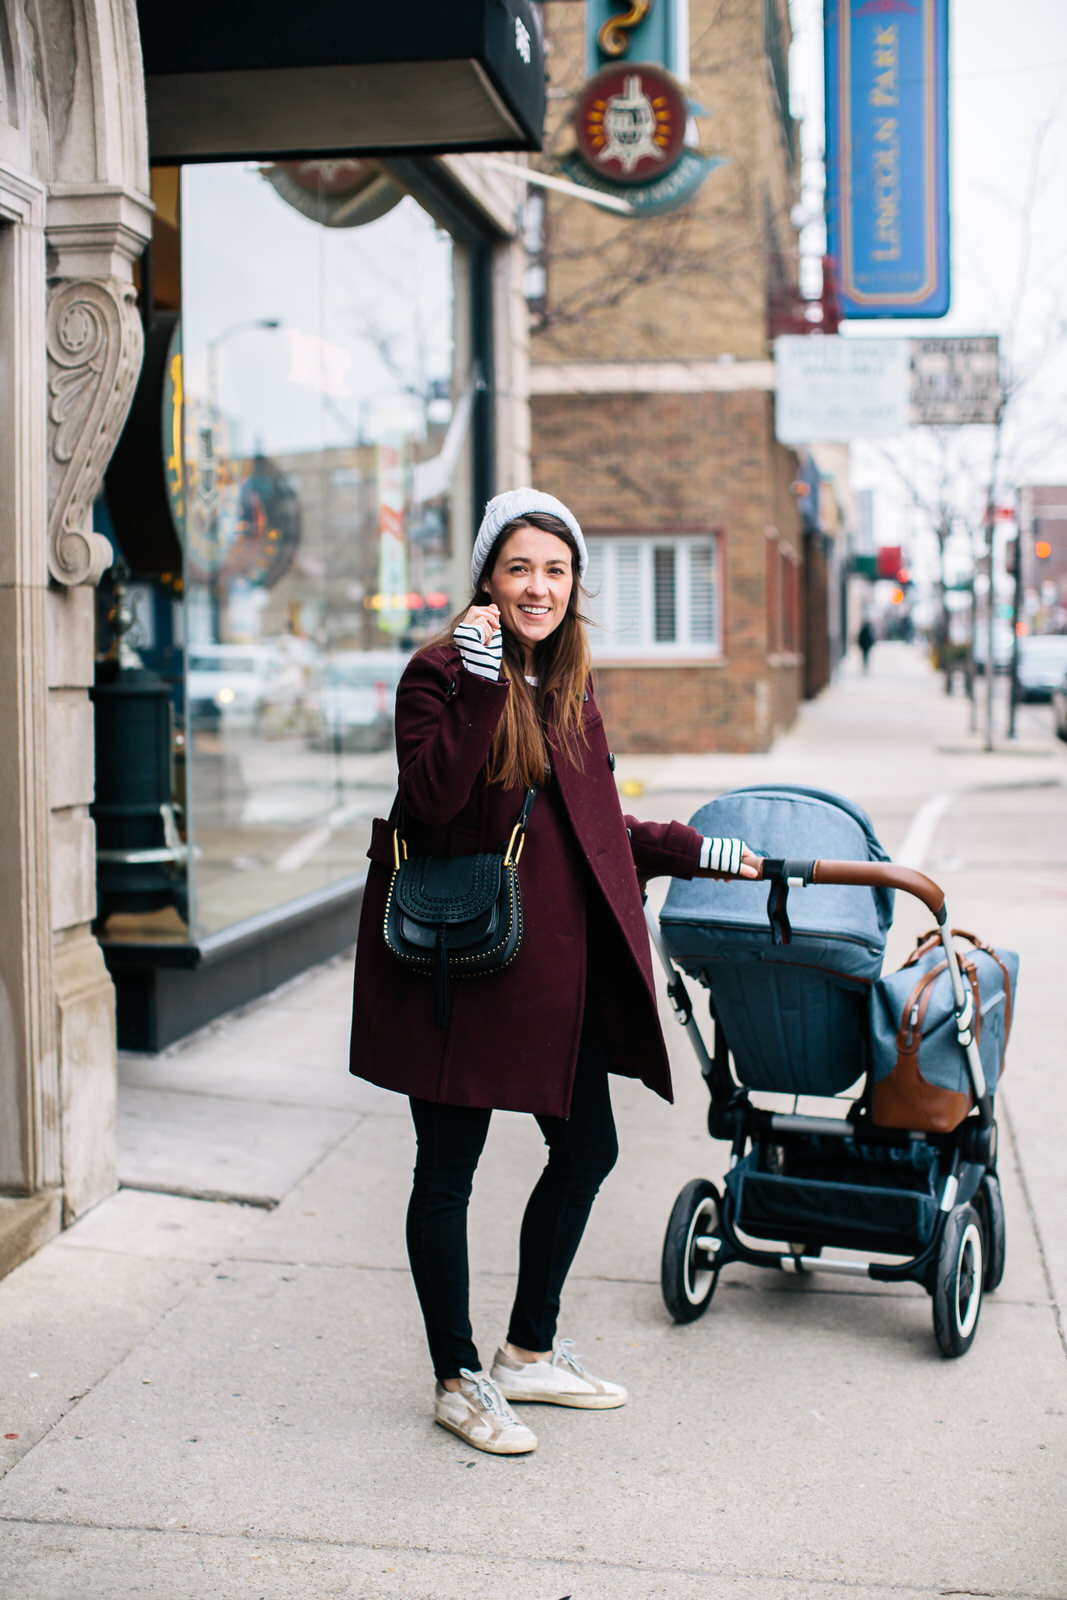 winter-activities-to-do-in-chicago-with-bugaboo-donkey-weekender-4-of-20-1